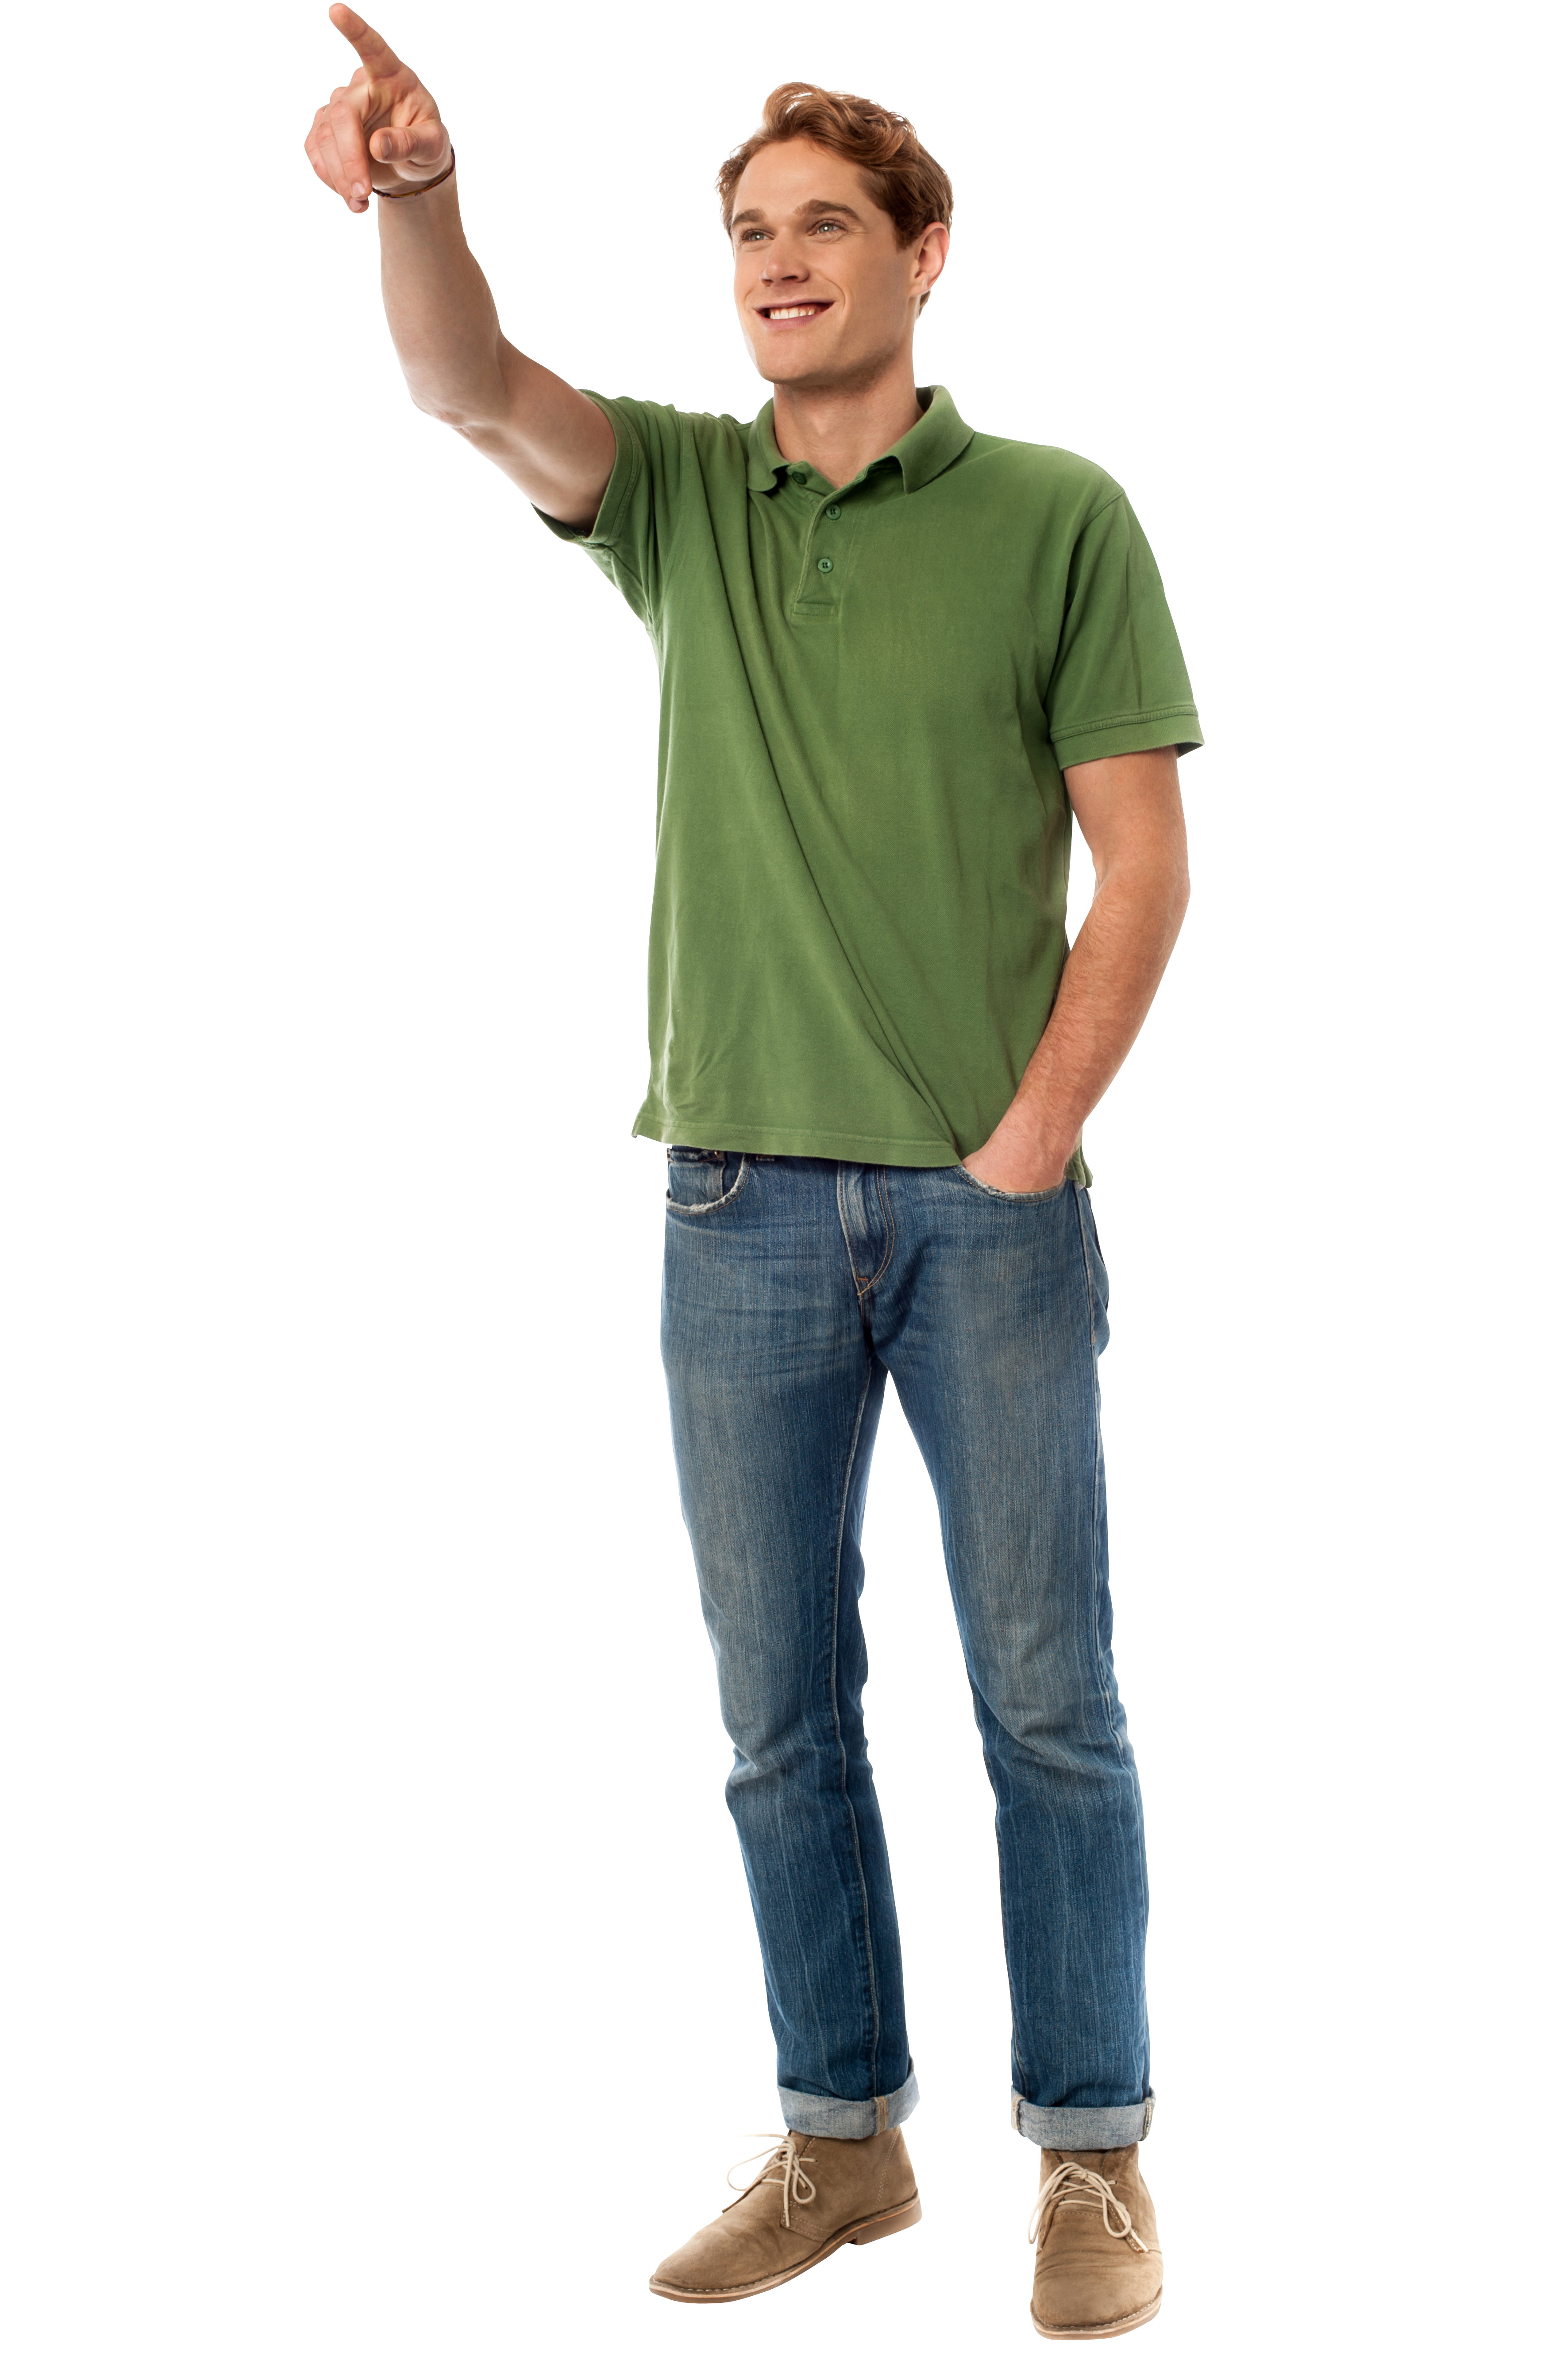 Men Pointing Left PNG Image - PurePNG | Free transparent ...